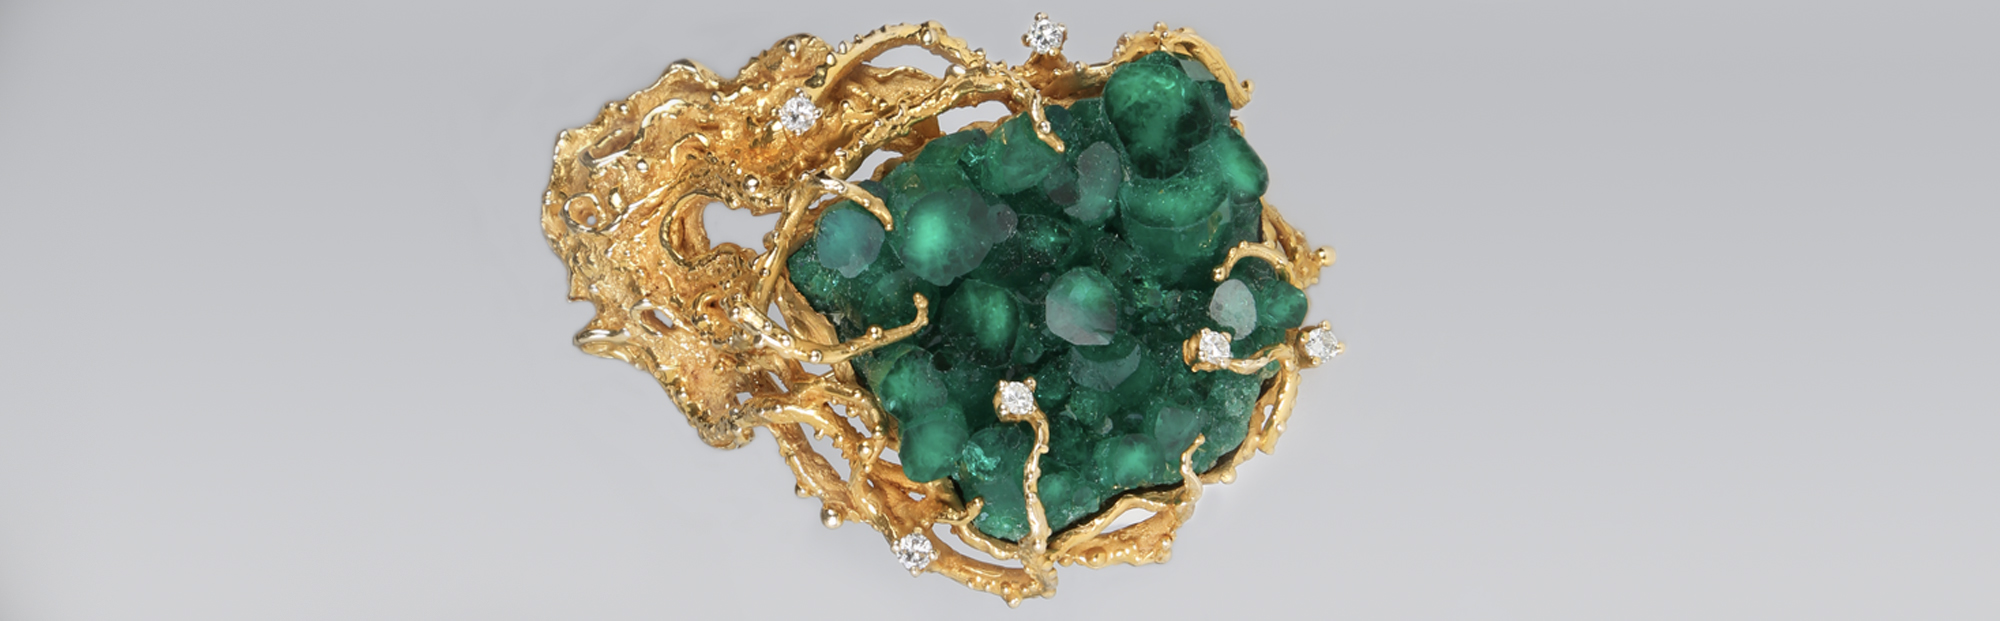 Jewelry, Fashion, and Accessories from The Collection of Flora Crichton and Other Owners